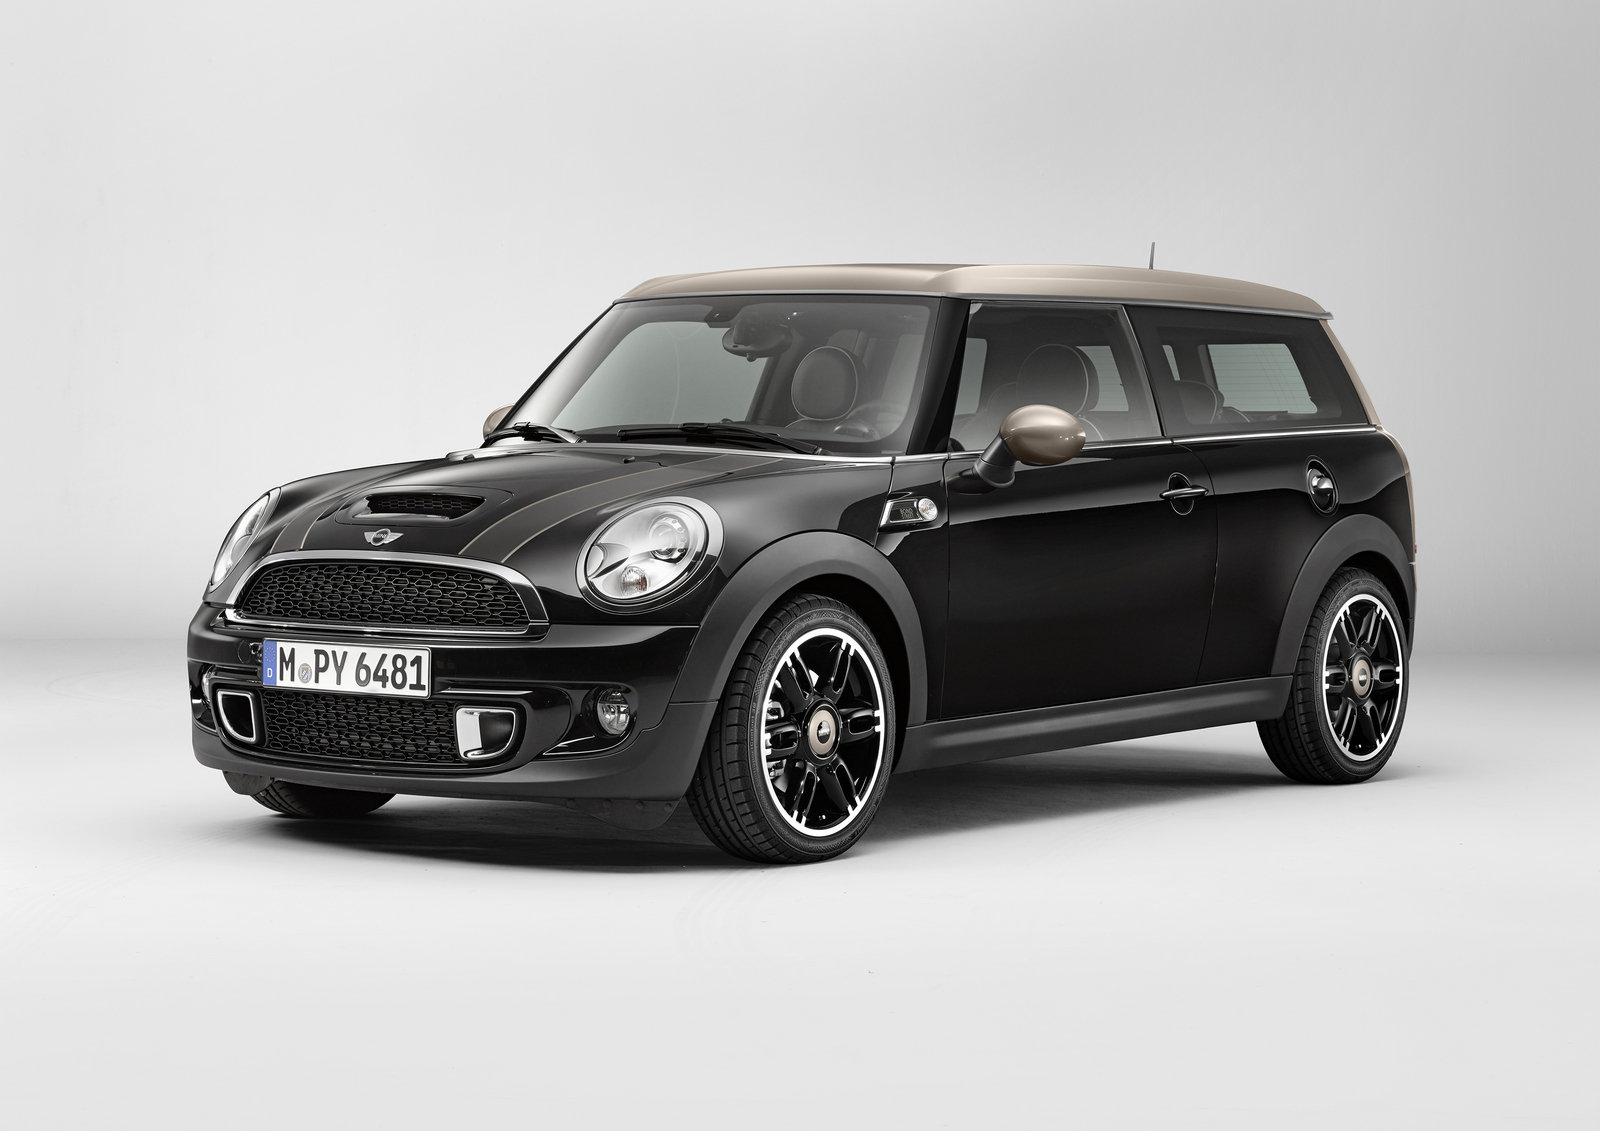 2013 mini clubman bond street edition review top speed. Black Bedroom Furniture Sets. Home Design Ideas